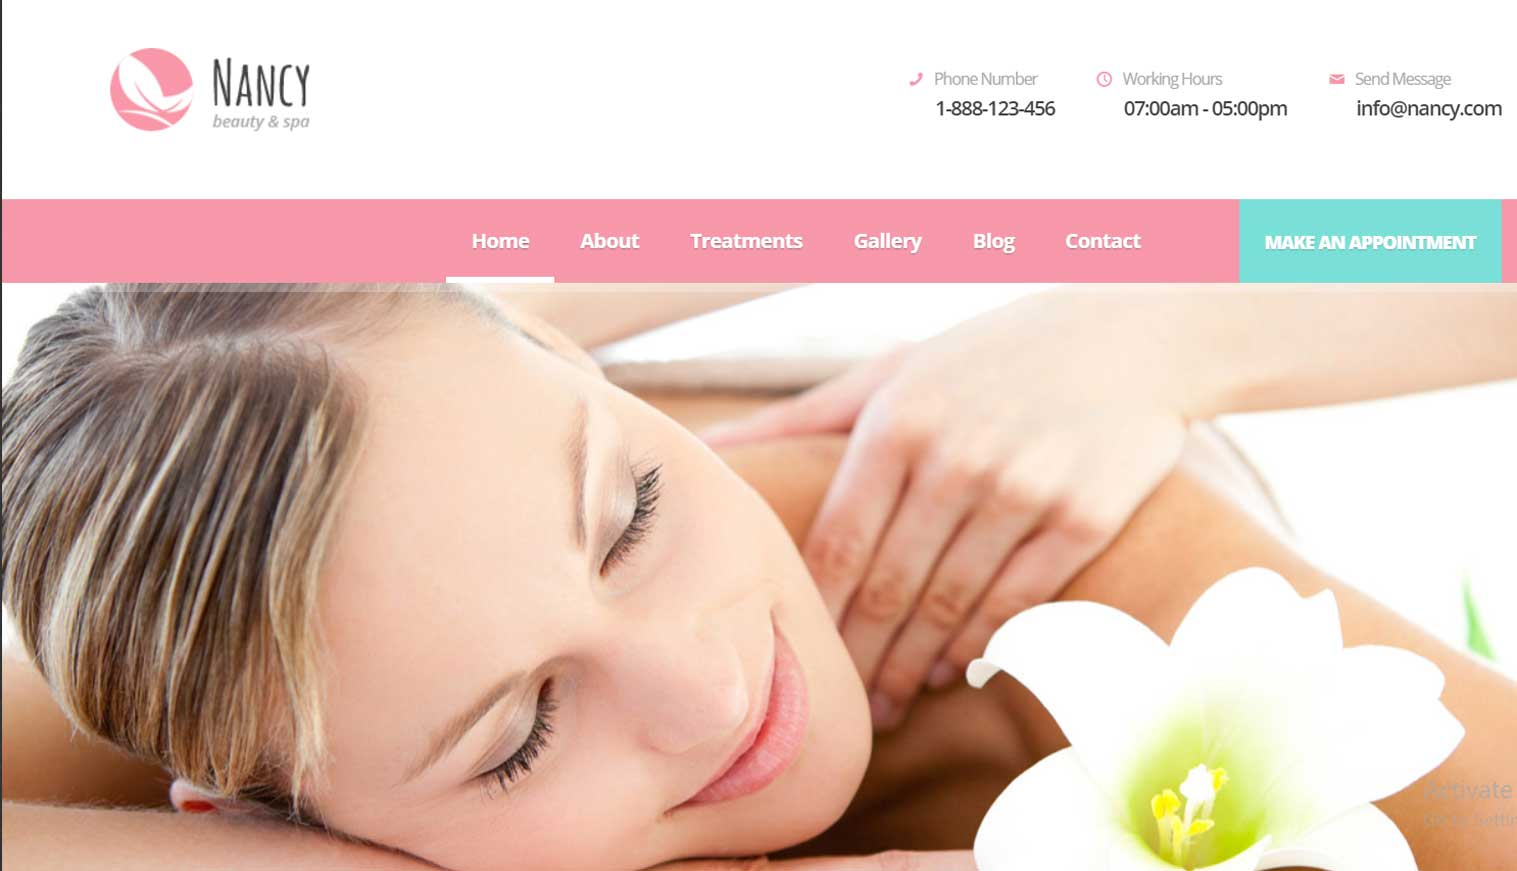 NANCY - Wellness, Spa, Beauty WordPress Theme